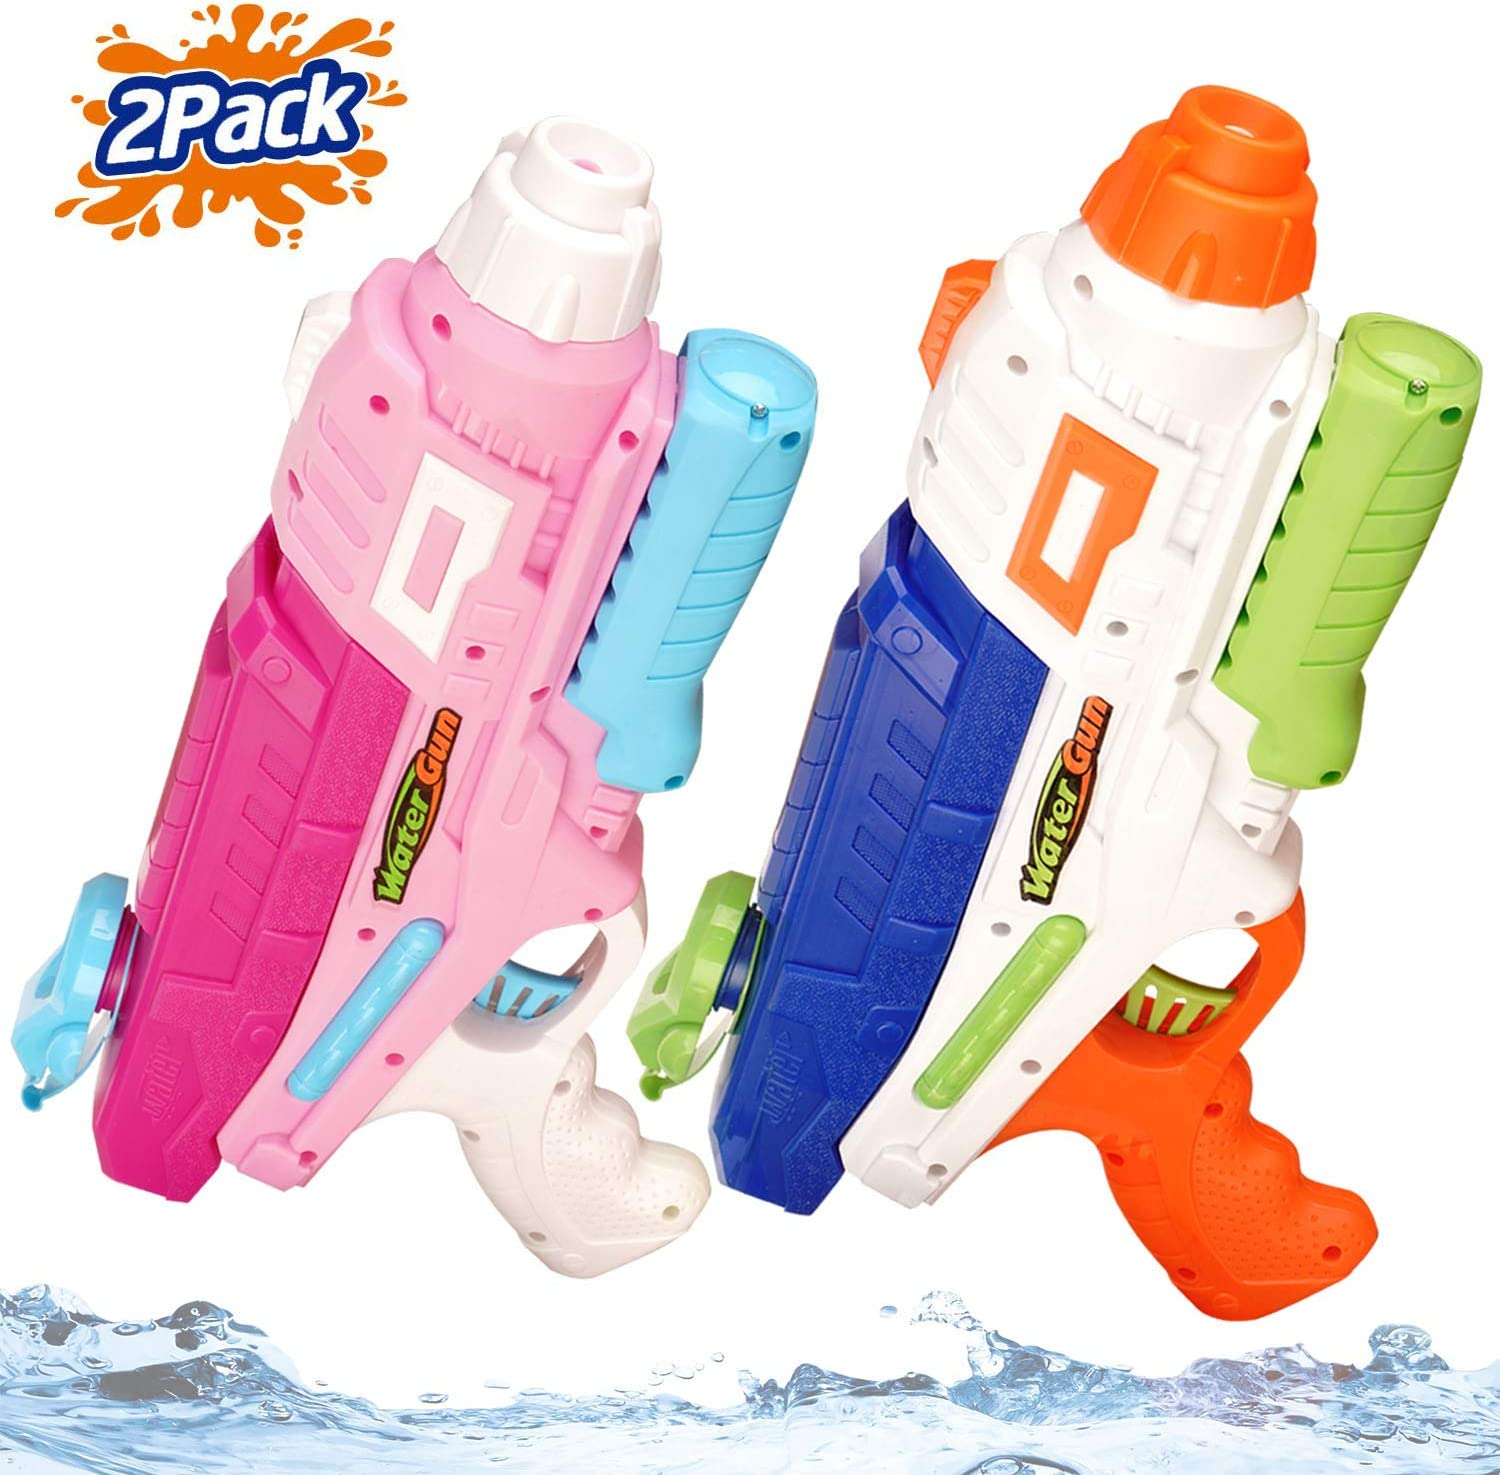 Jogotoll 2 Pack Water Guns for Kids Adults 600CC Blaster 32 Ft Long Range Squirt Guns Pool Beach Sand Toys Water Pistol